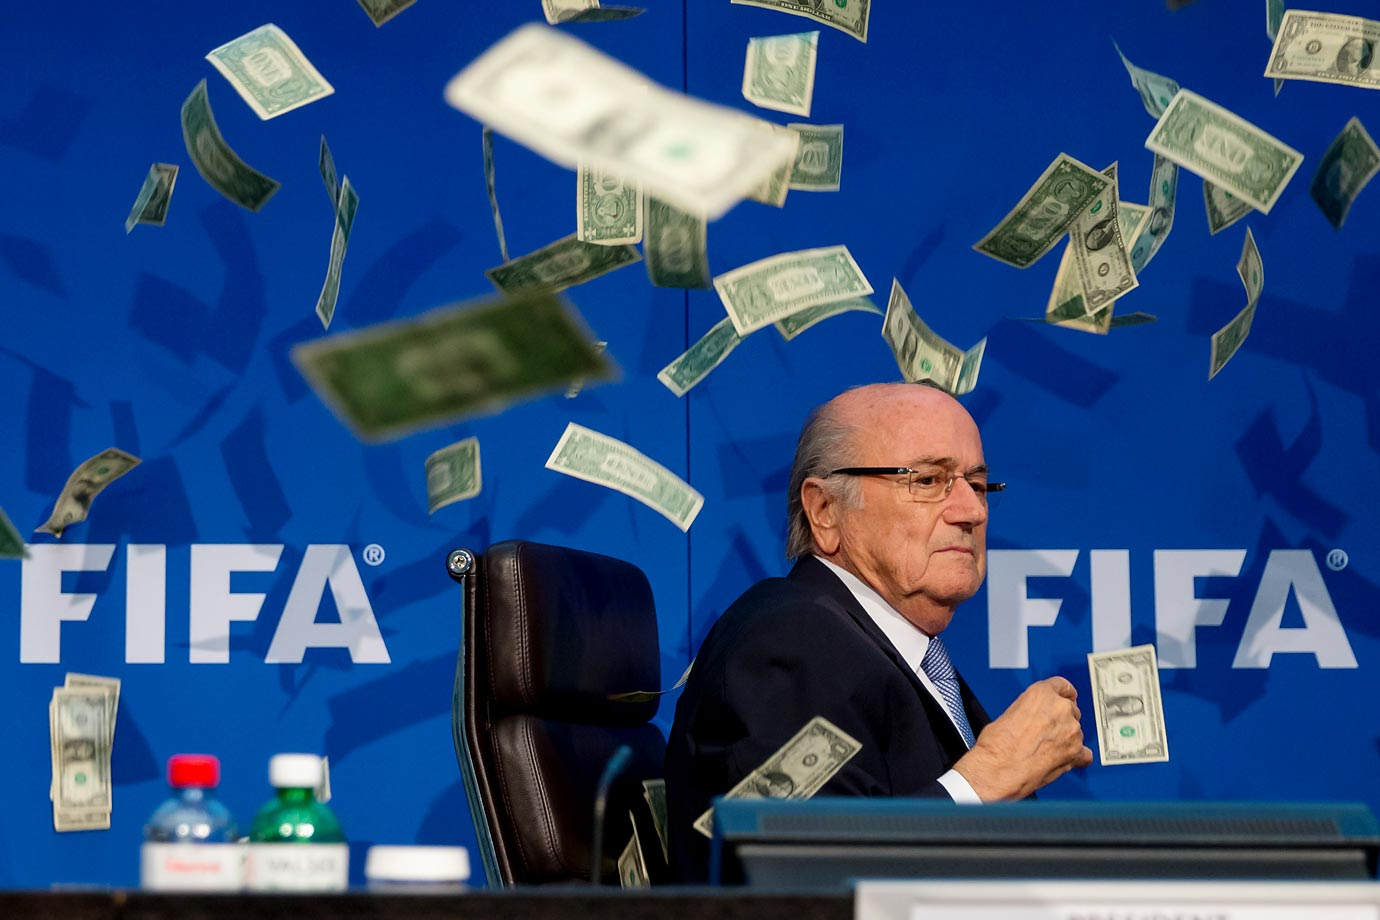 Comedian Simon Brodkin (not pictured) throws cash at FIFA President Sepp Blatter during a press conference in Zurich, Switzerland.